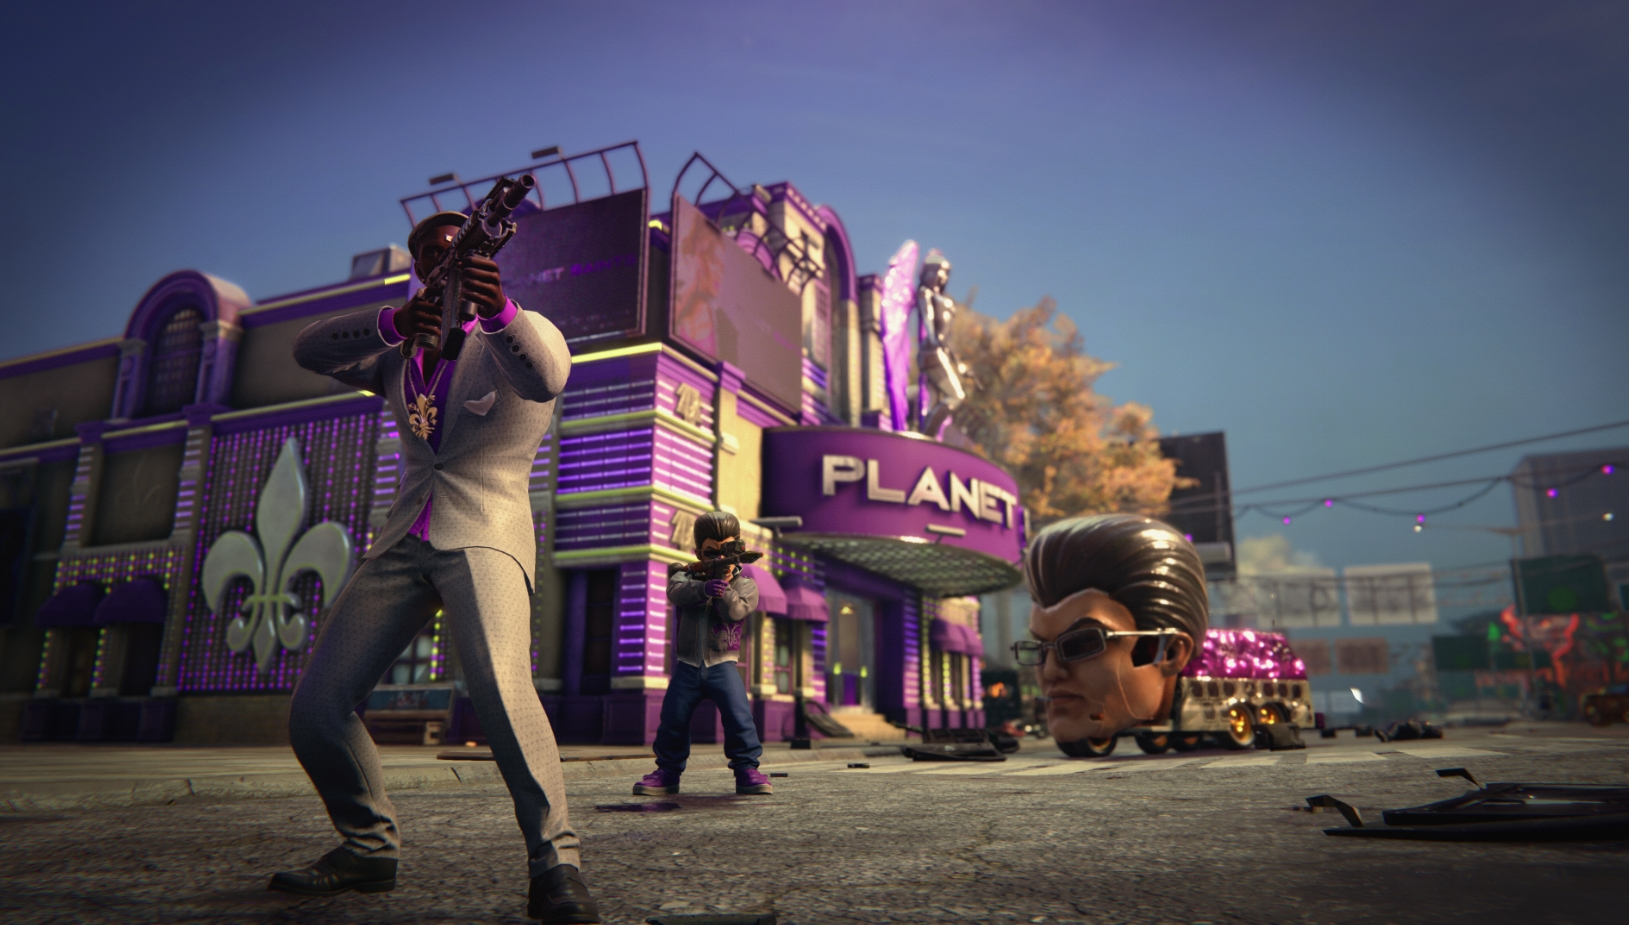 Saints Row: The Third Remastered annonce sa venue sur PS4, Xbox One et PC